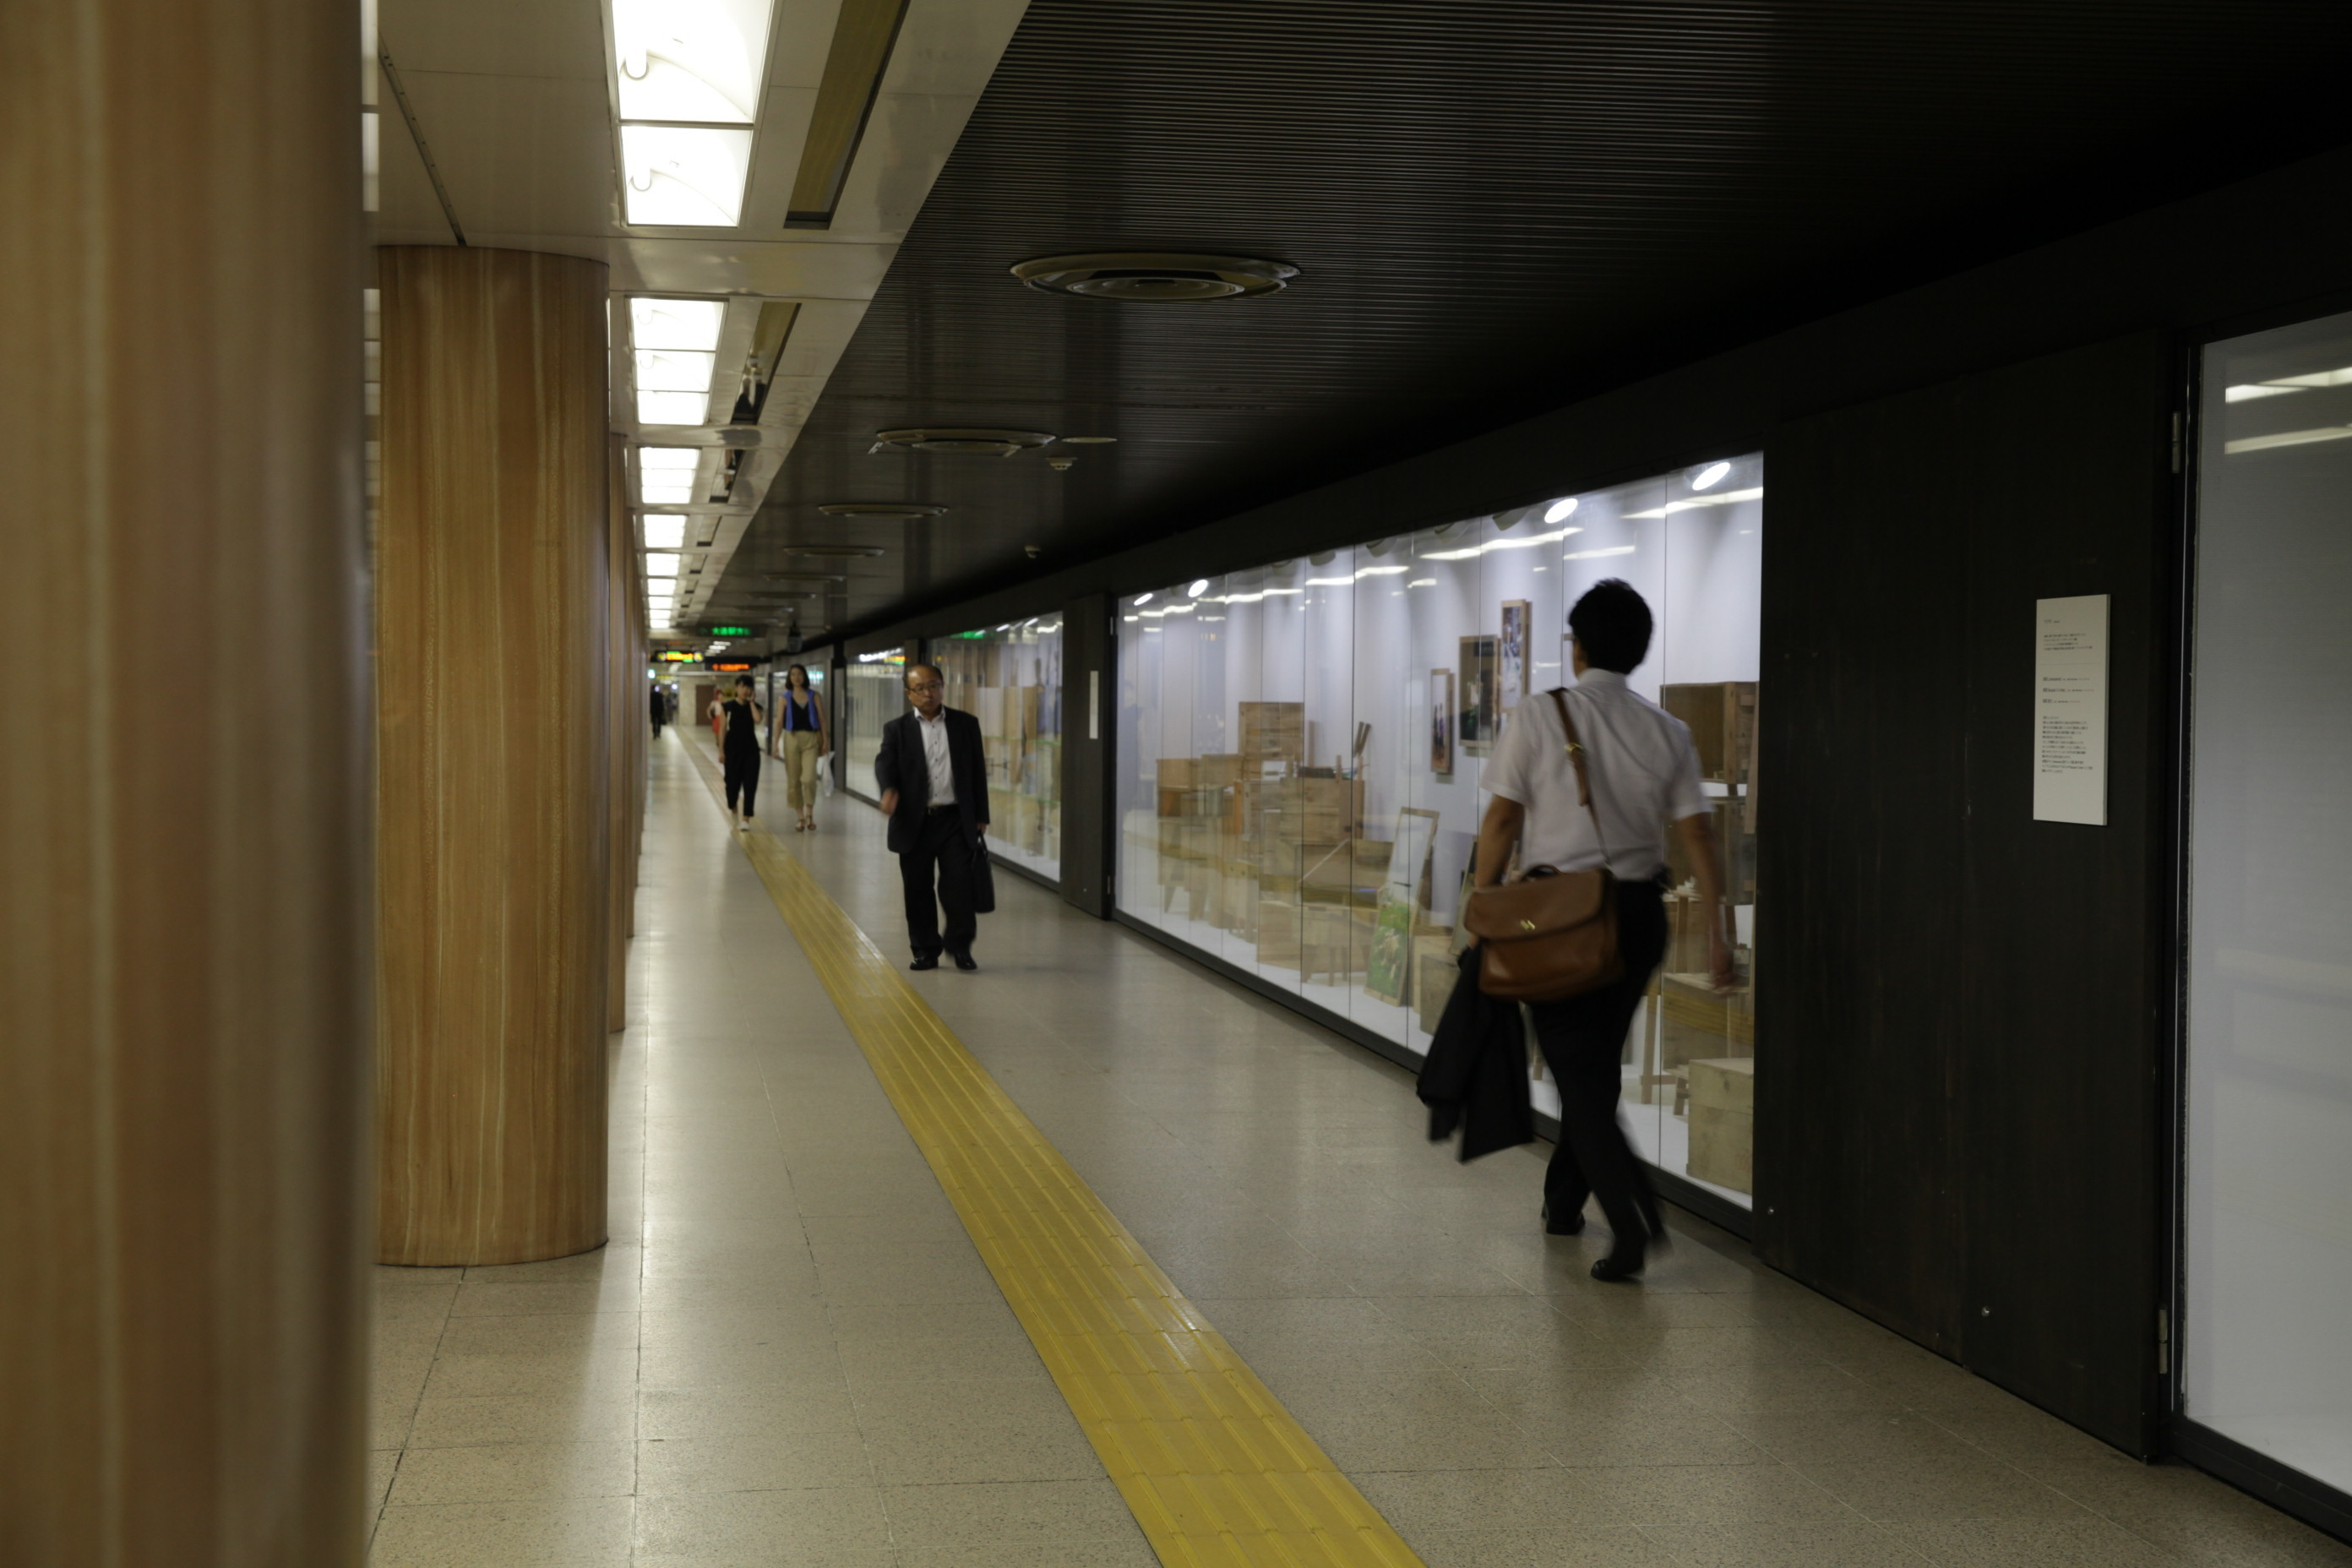 Sapporo Odori 500m Underground Walkway Gallery | Time Out Tokyo